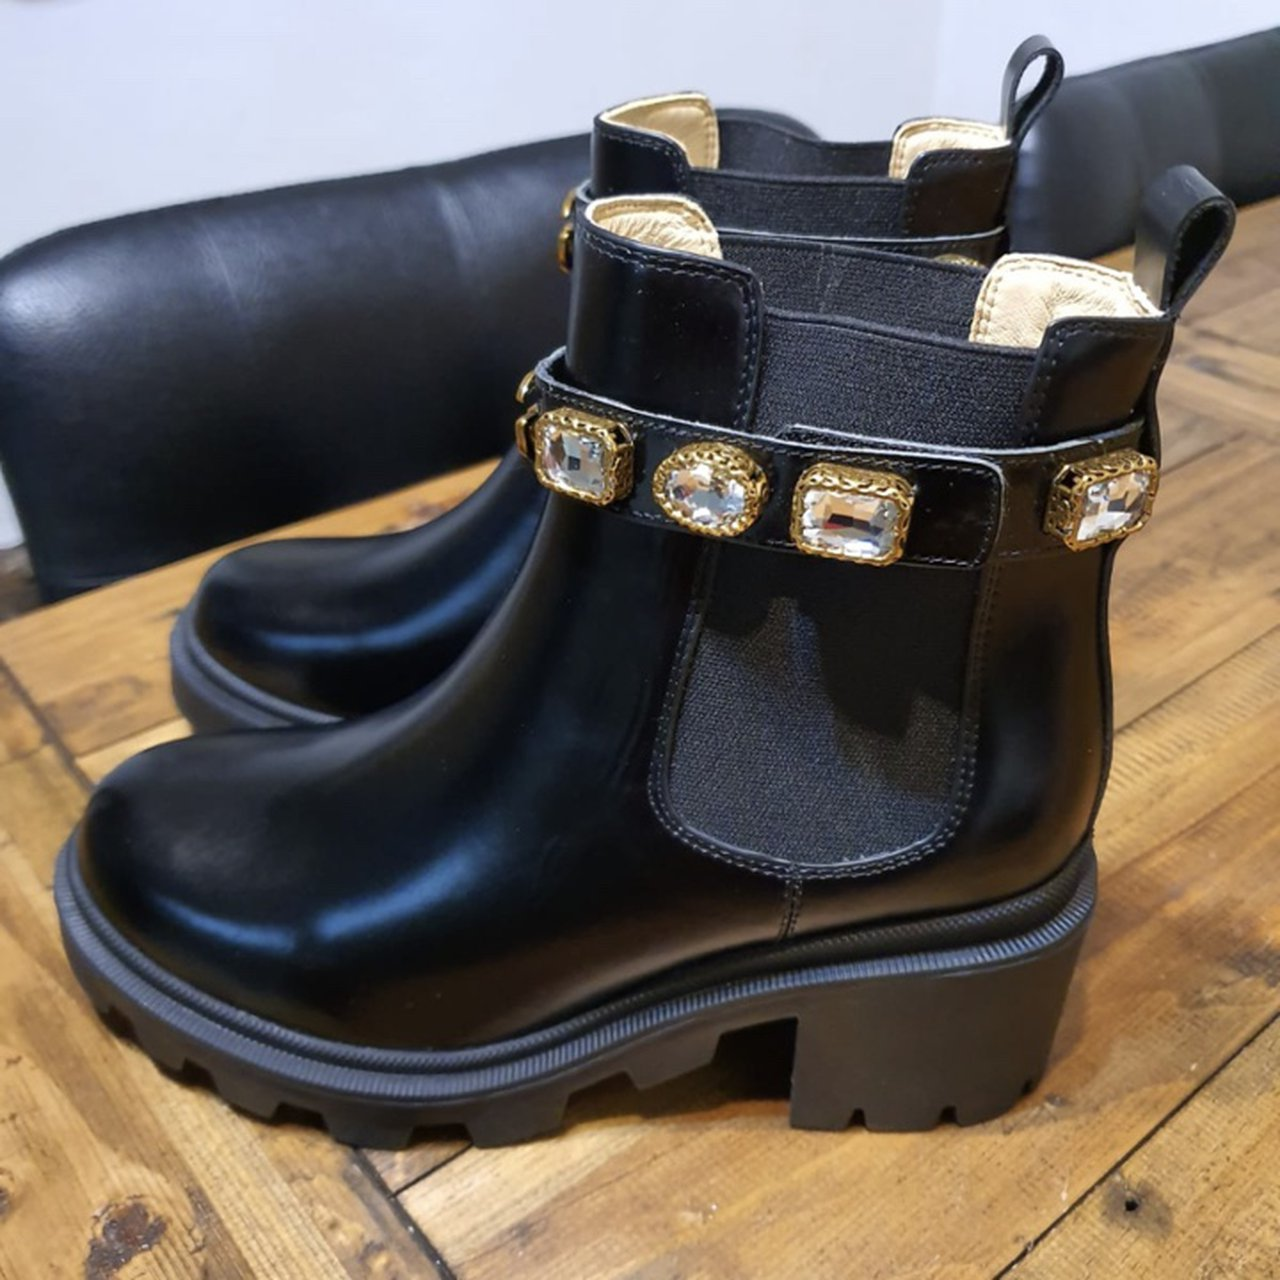 Gucci snake boots black leather women's